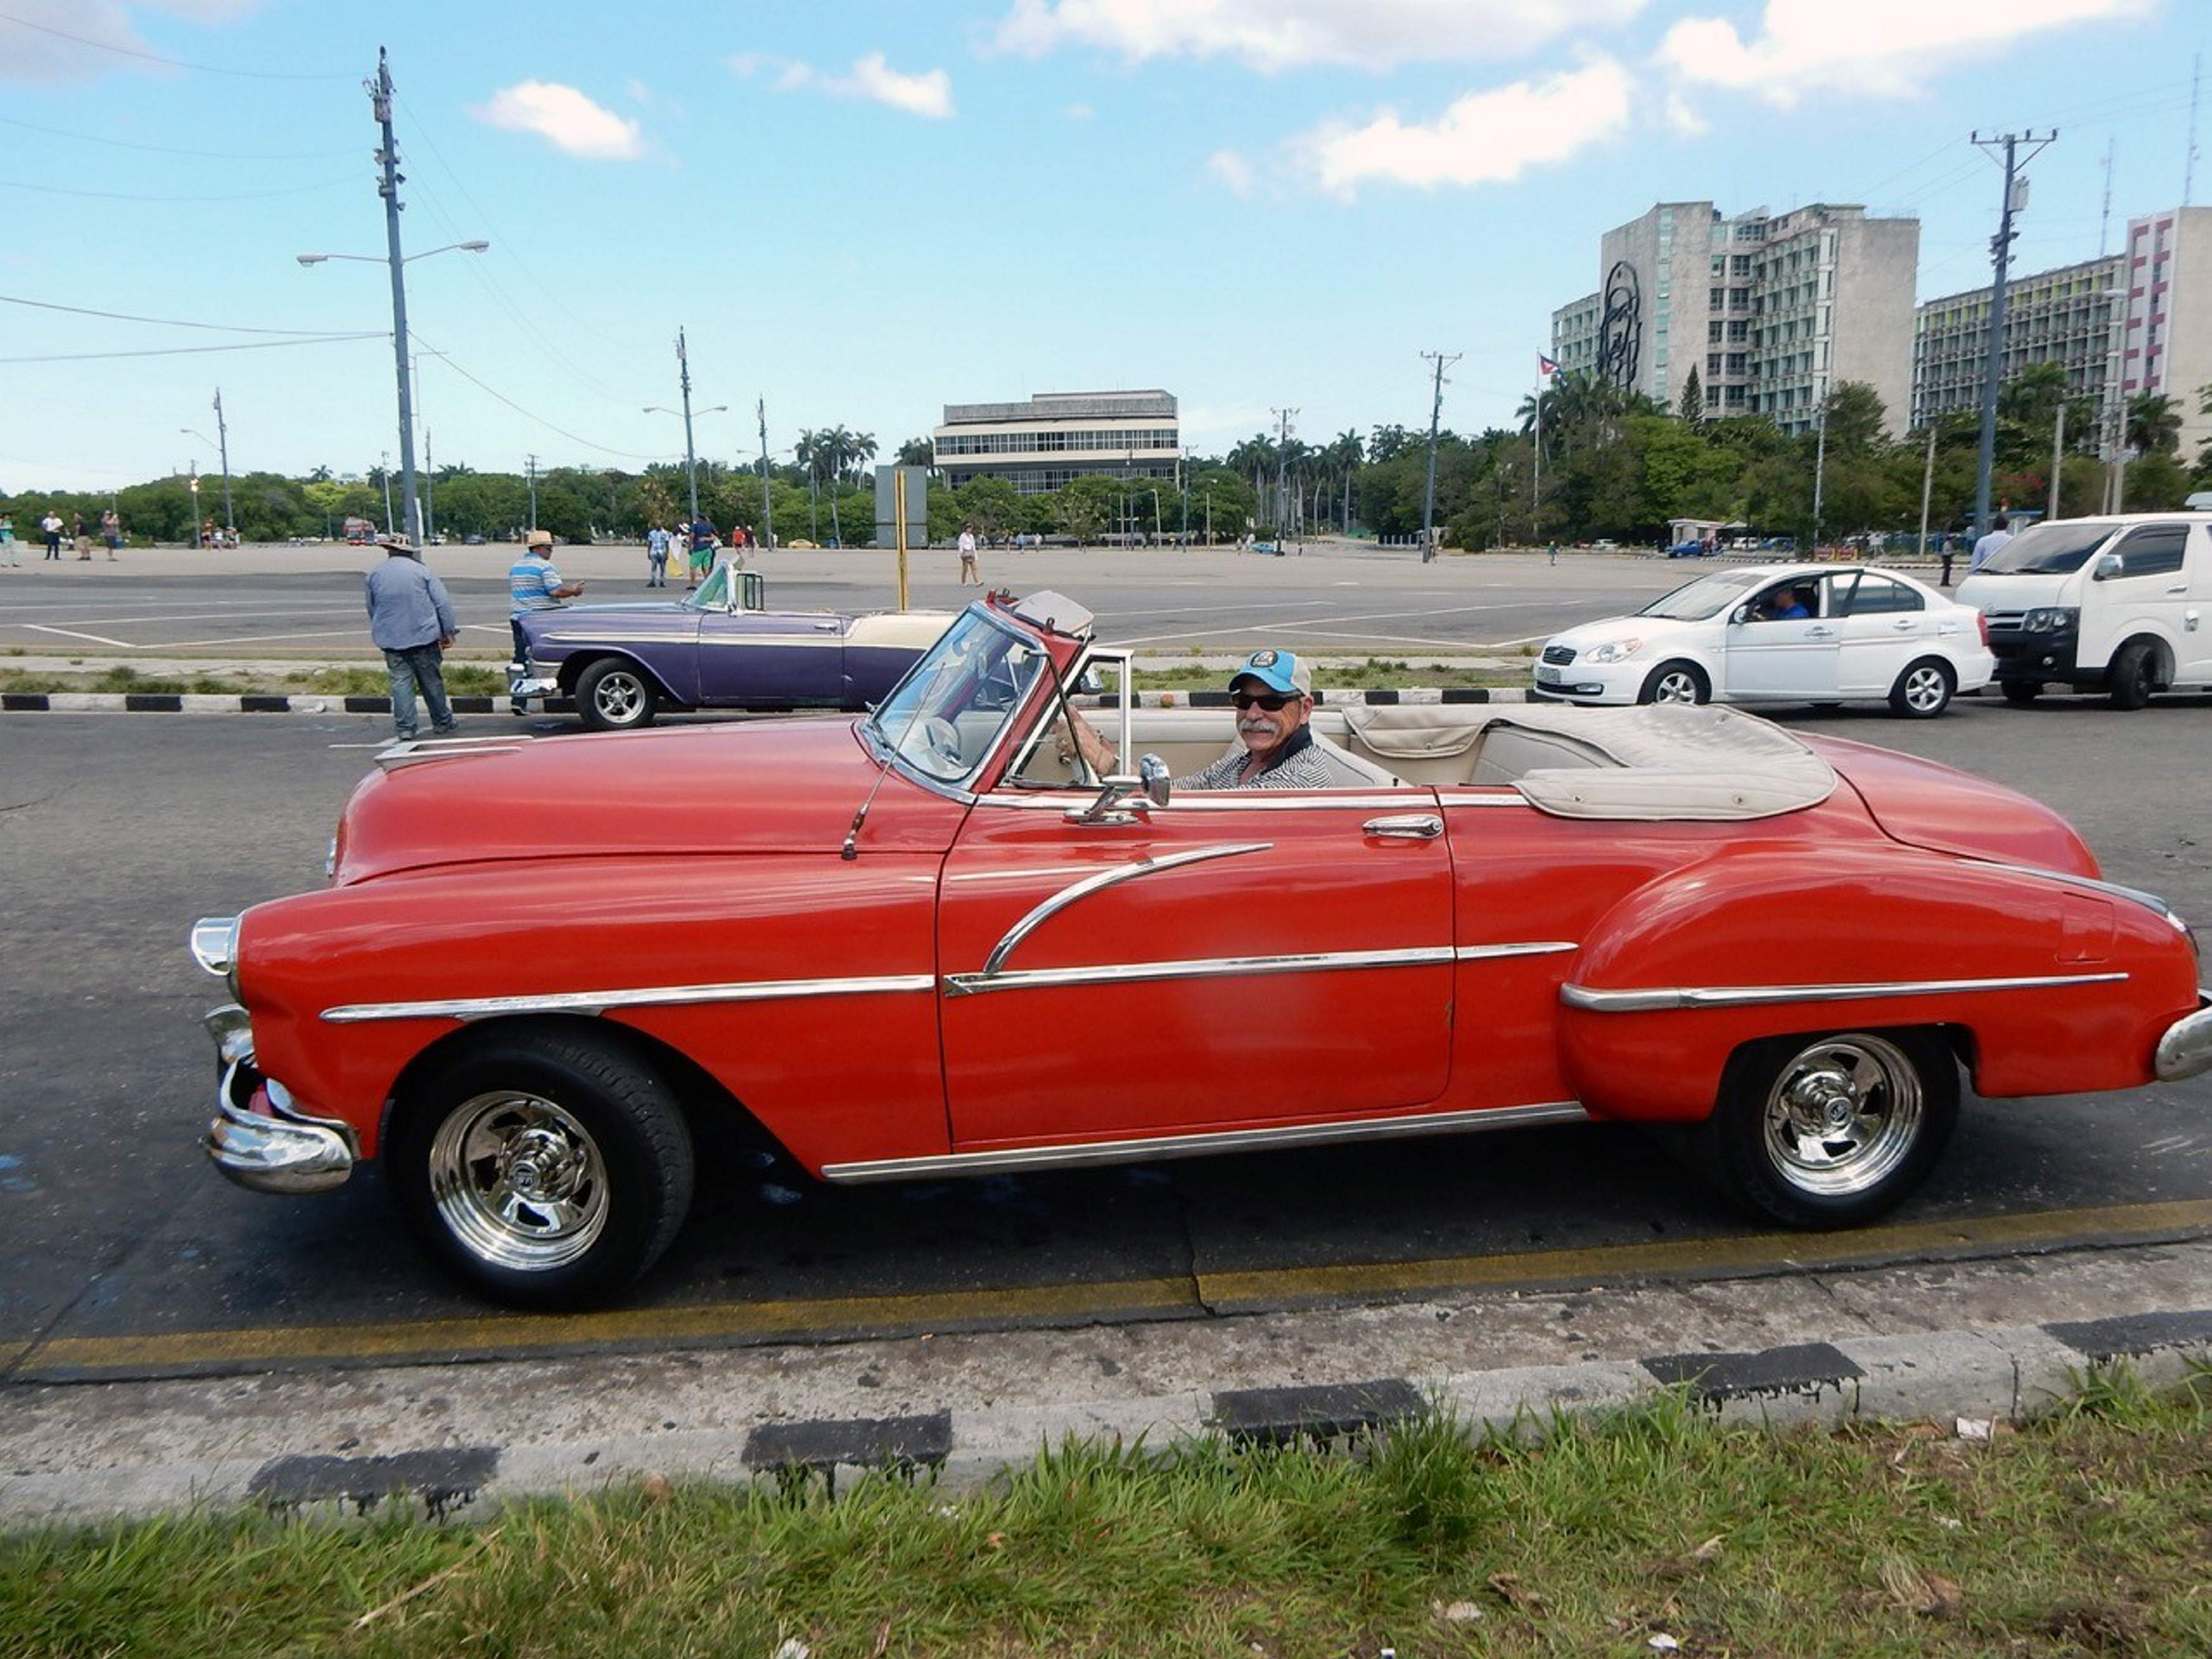 Experiencing Cubas Fine Fly Fishing 1950s American Cars Oldsmobile When Visiting Cuba It Is A Thrill To Drive Old Like The Author Cruised Around In